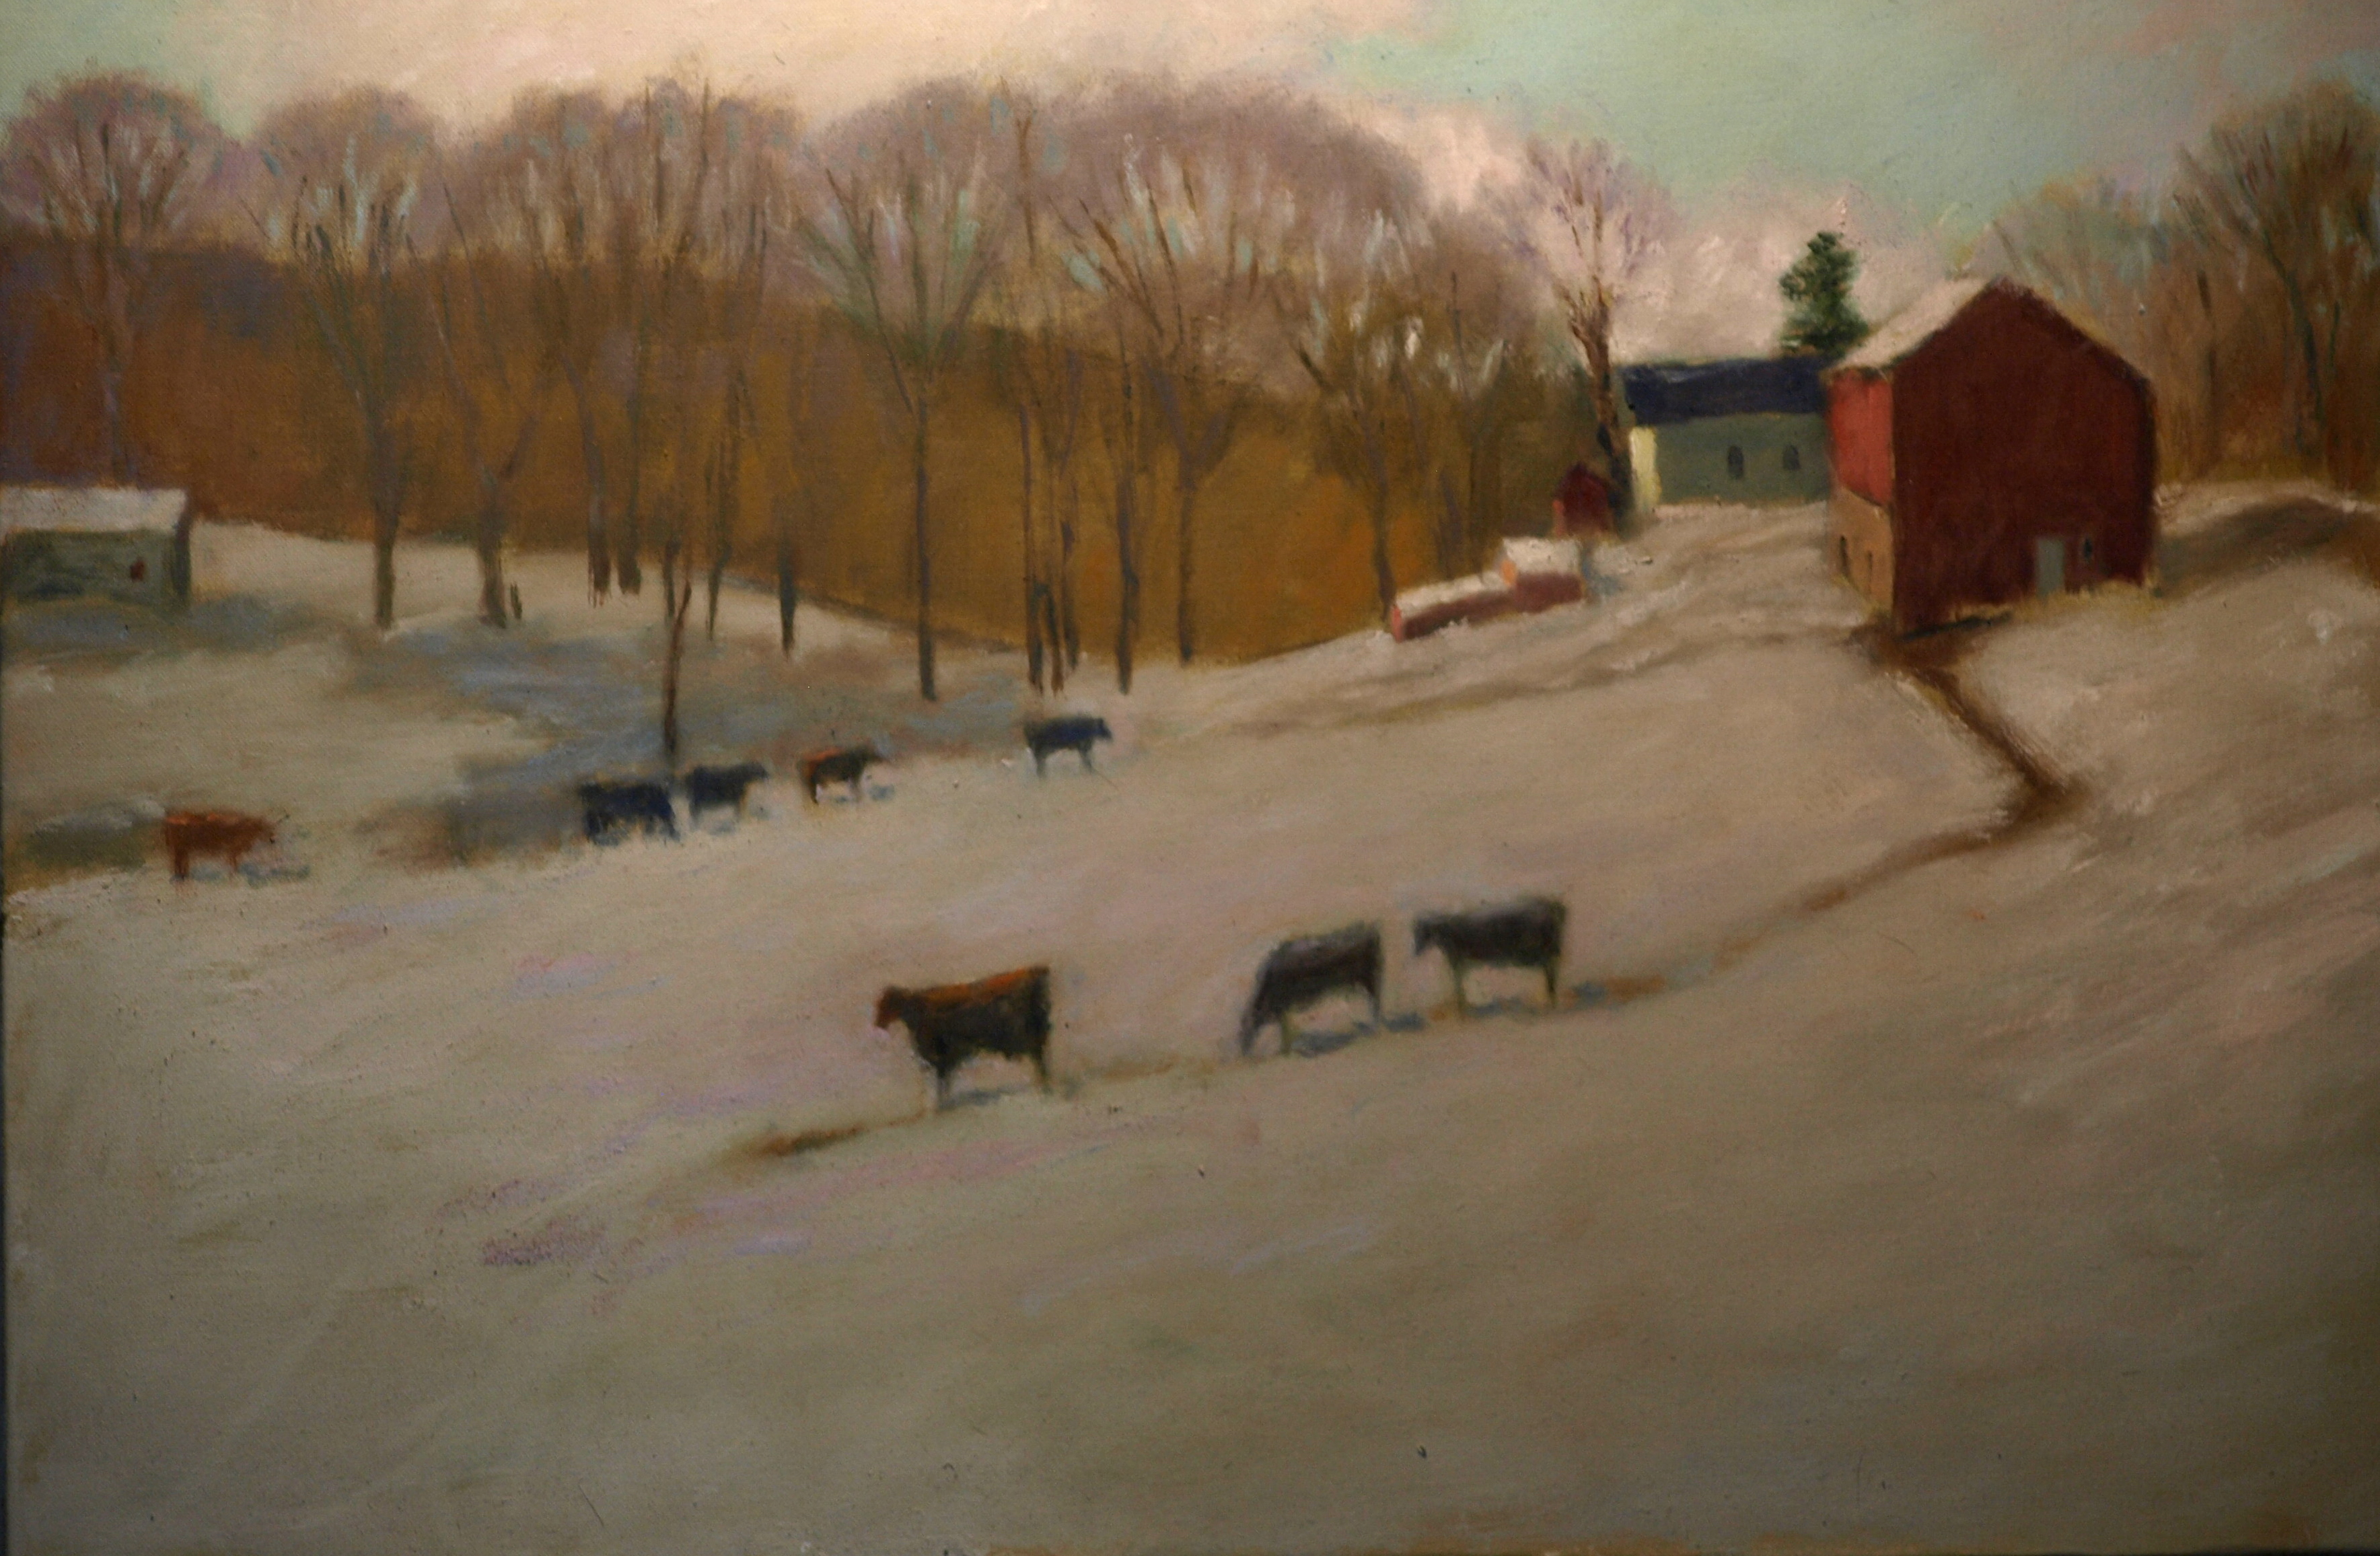 Hipp Farm -- Snowbound, Oil on Canvas, 24 x 36 Inches, by Richard Stalter, $1200